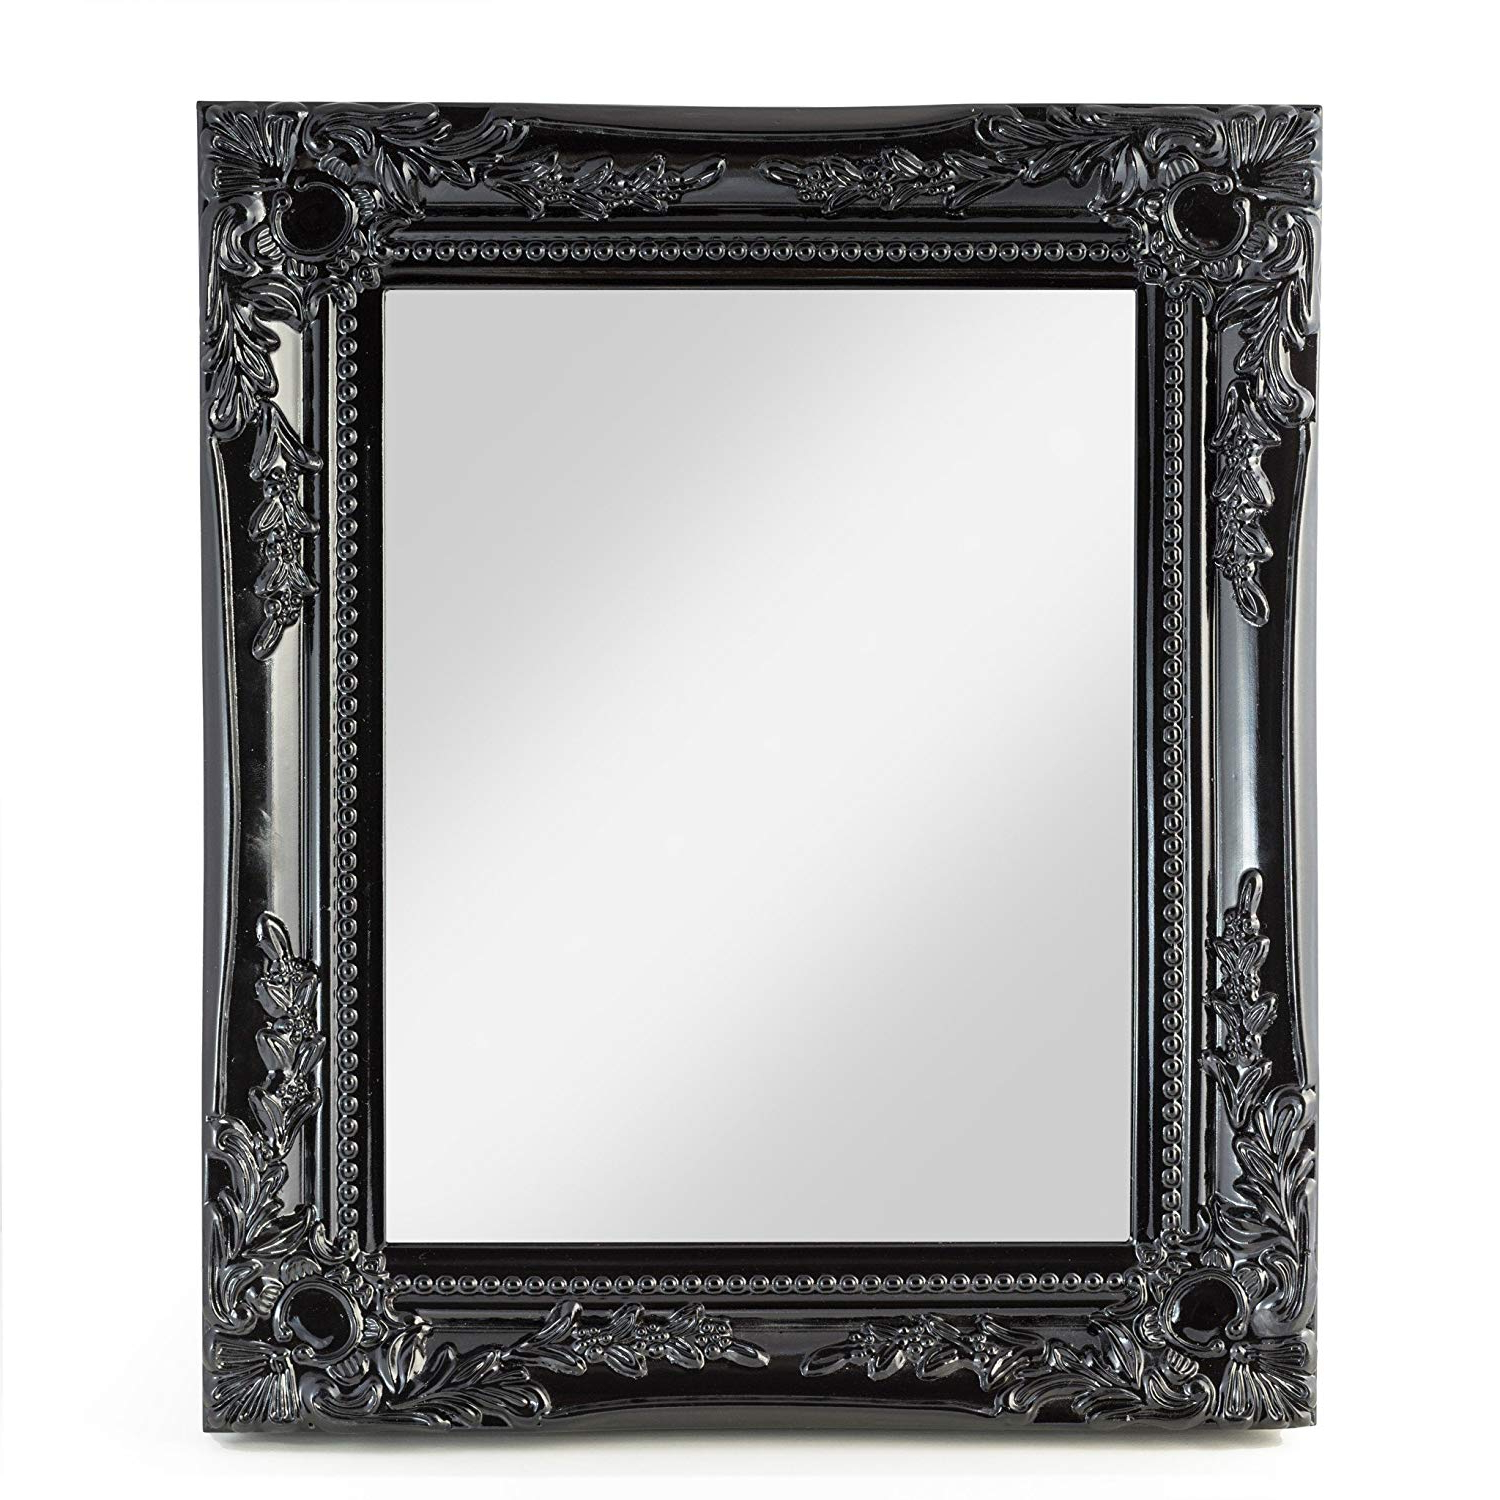 Elbmoebel Wall Mirror Shabby Chic Antique Style Ornate Black Silver White –  Large 33X27X3 Cm (Black) Regarding Famous Large Black Wall Mirrors (View 6 of 20)